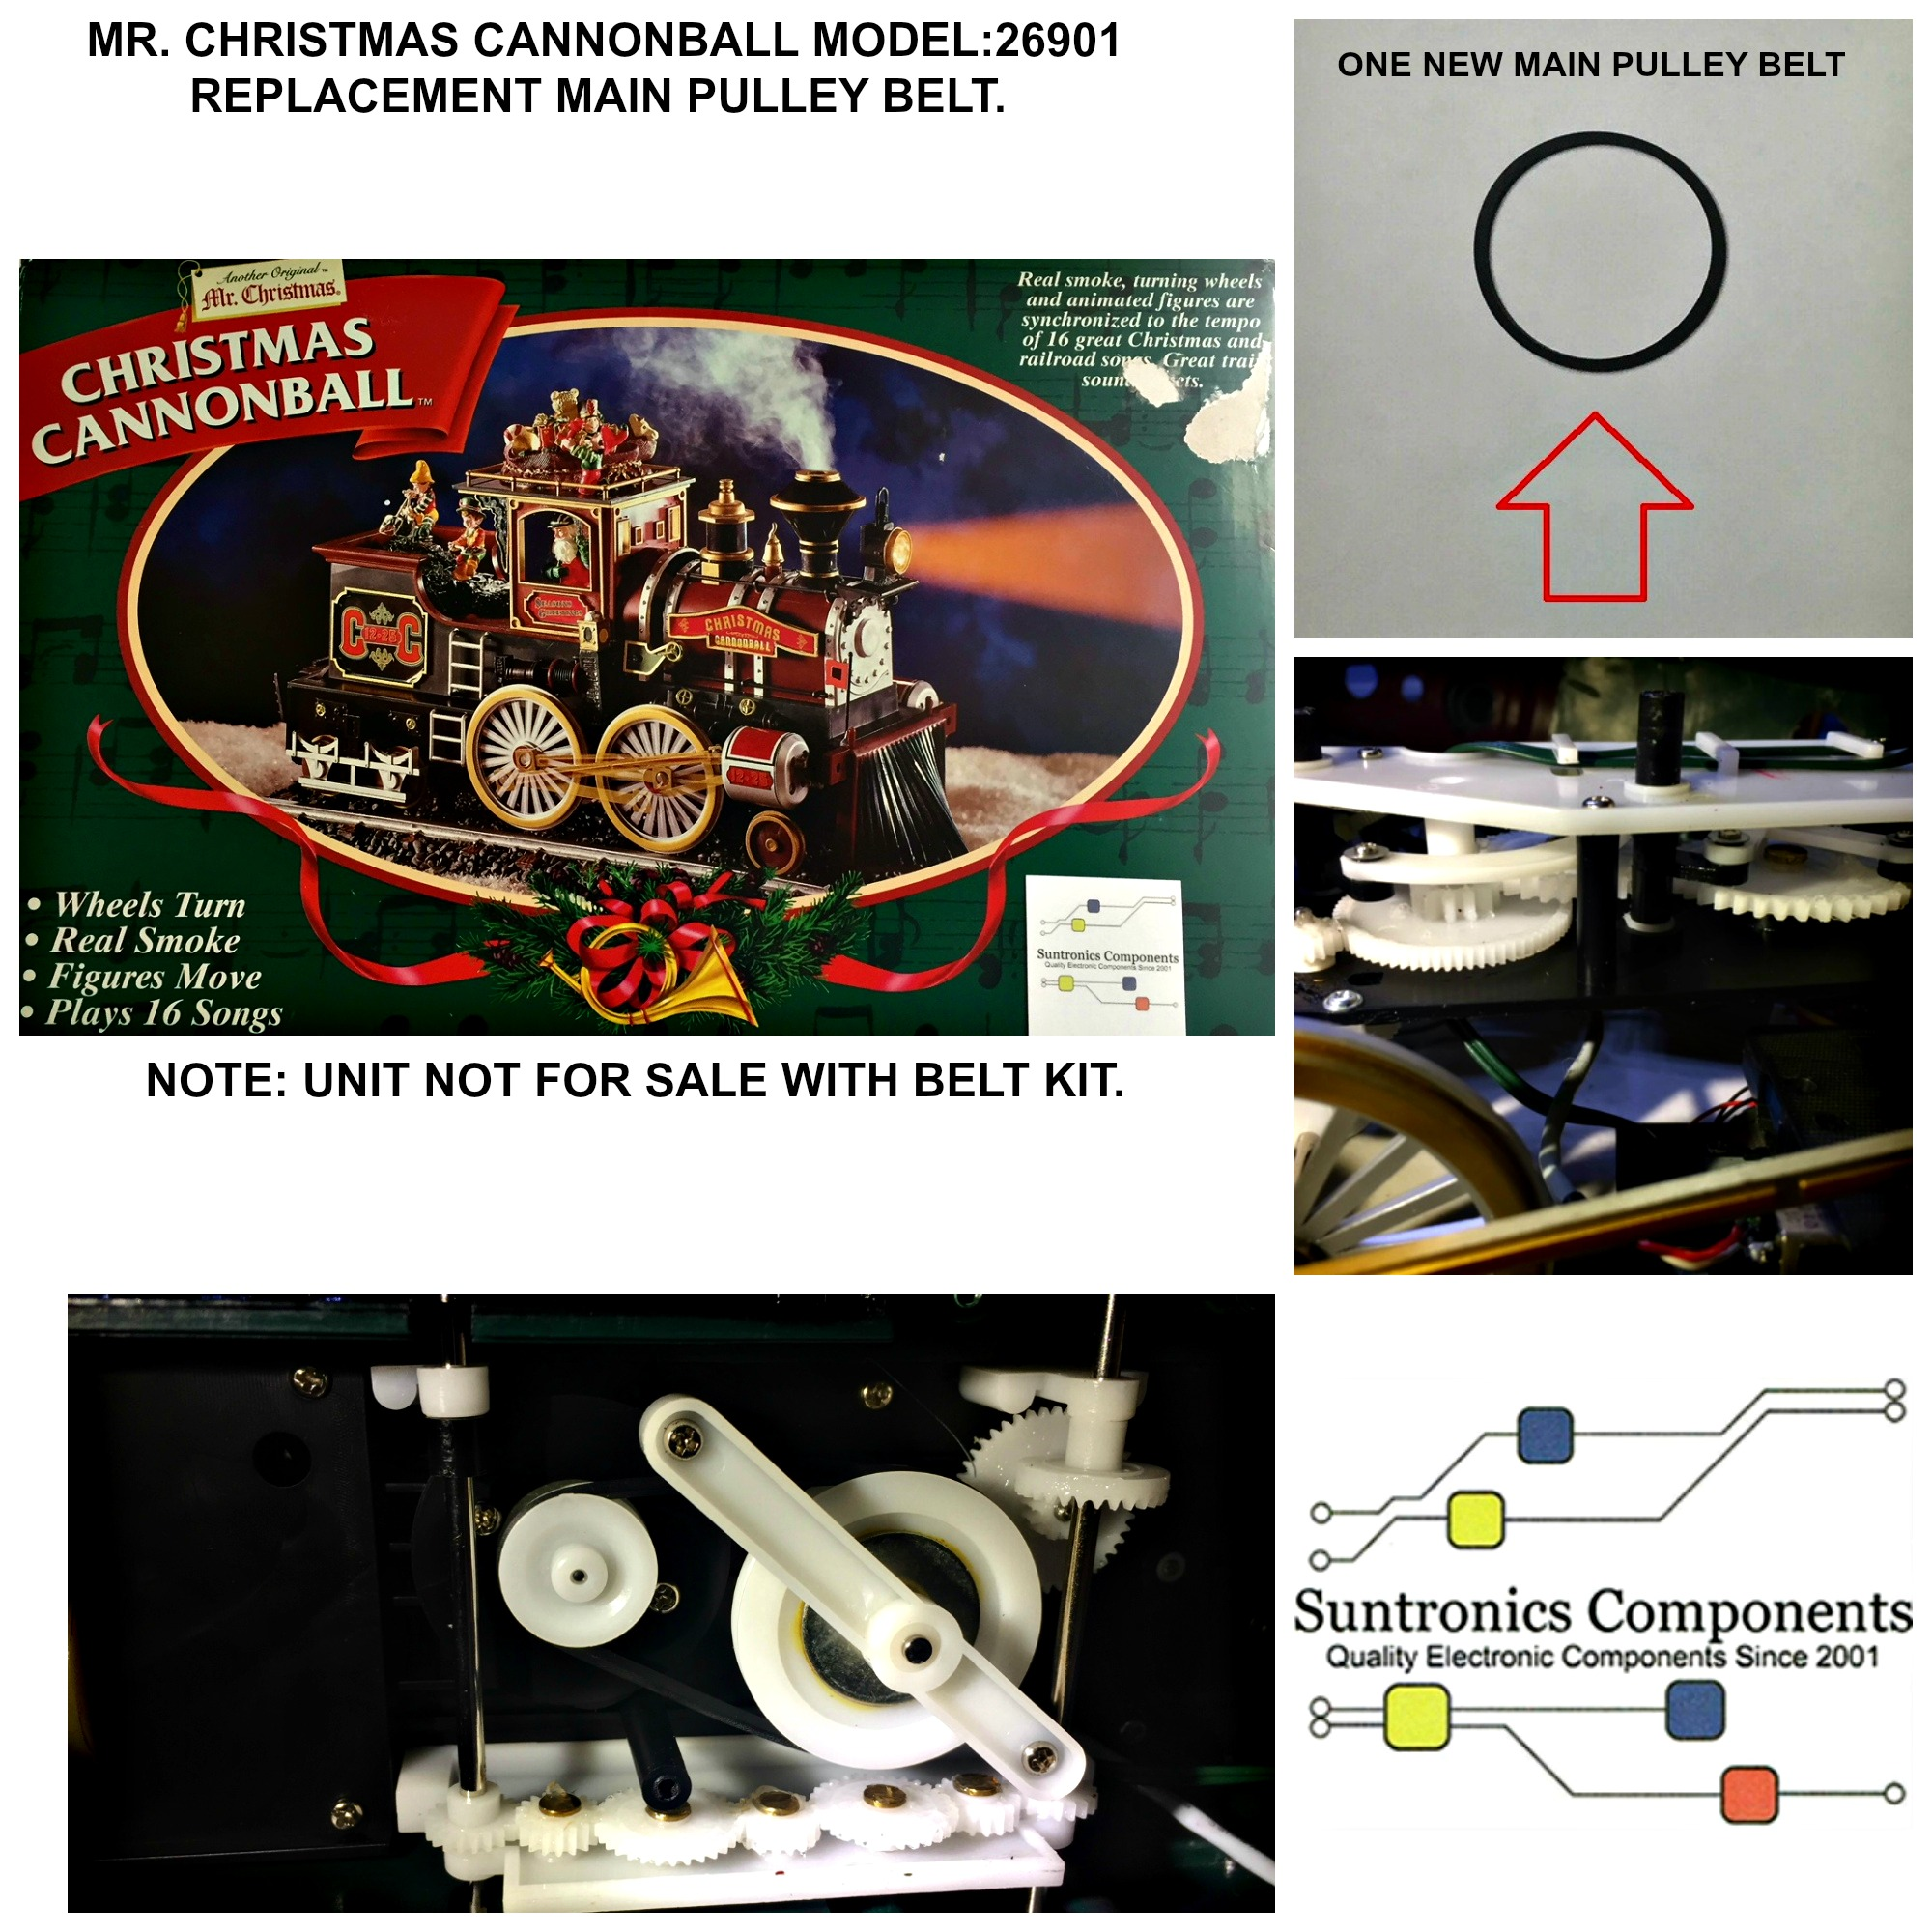 PicMonkey Image MR CHRISTMAS CANNONBALL BELT KIT  MODEL 26901.JPG